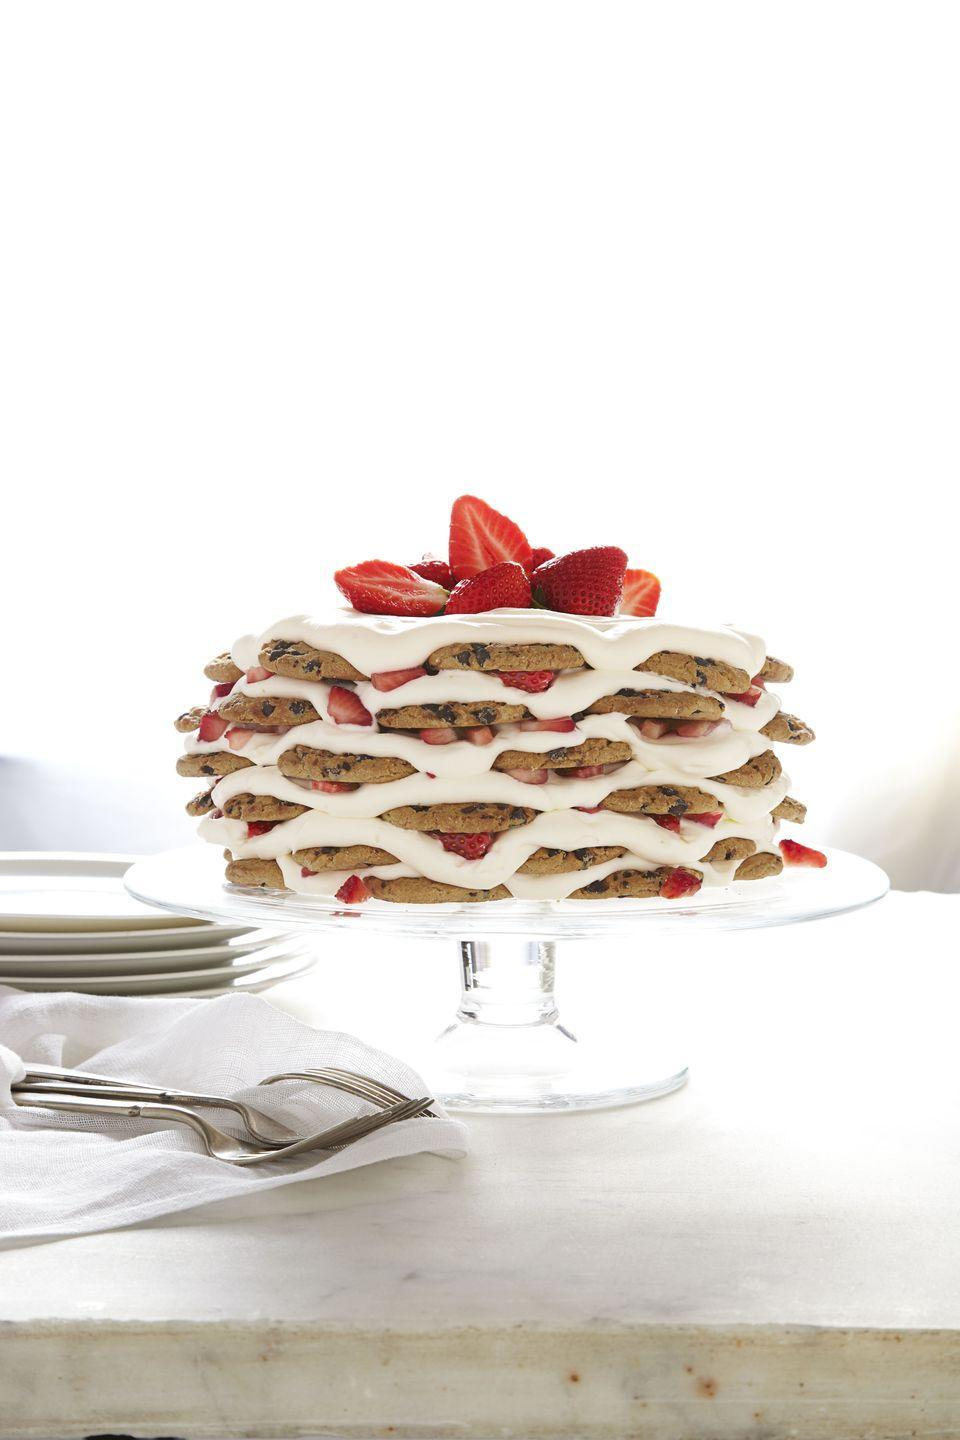 """<p>America's two favorite desserts — cookies and cake — combined into one is the best way to celebrate the nation's birthday.</p><p><em><a href=""""https://www.goodhousekeeping.com/food-recipes/a15288/strawberry-chocolate-chip-icebox-cake-recipe-ghk0713/"""" rel=""""nofollow noopener"""" target=""""_blank"""" data-ylk=""""slk:Get the recipe for Strawberry and Chocolate Chip Icebox Cake »"""" class=""""link rapid-noclick-resp"""">Get the recipe for Strawberry and Chocolate Chip Icebox Cake »</a></em></p>"""